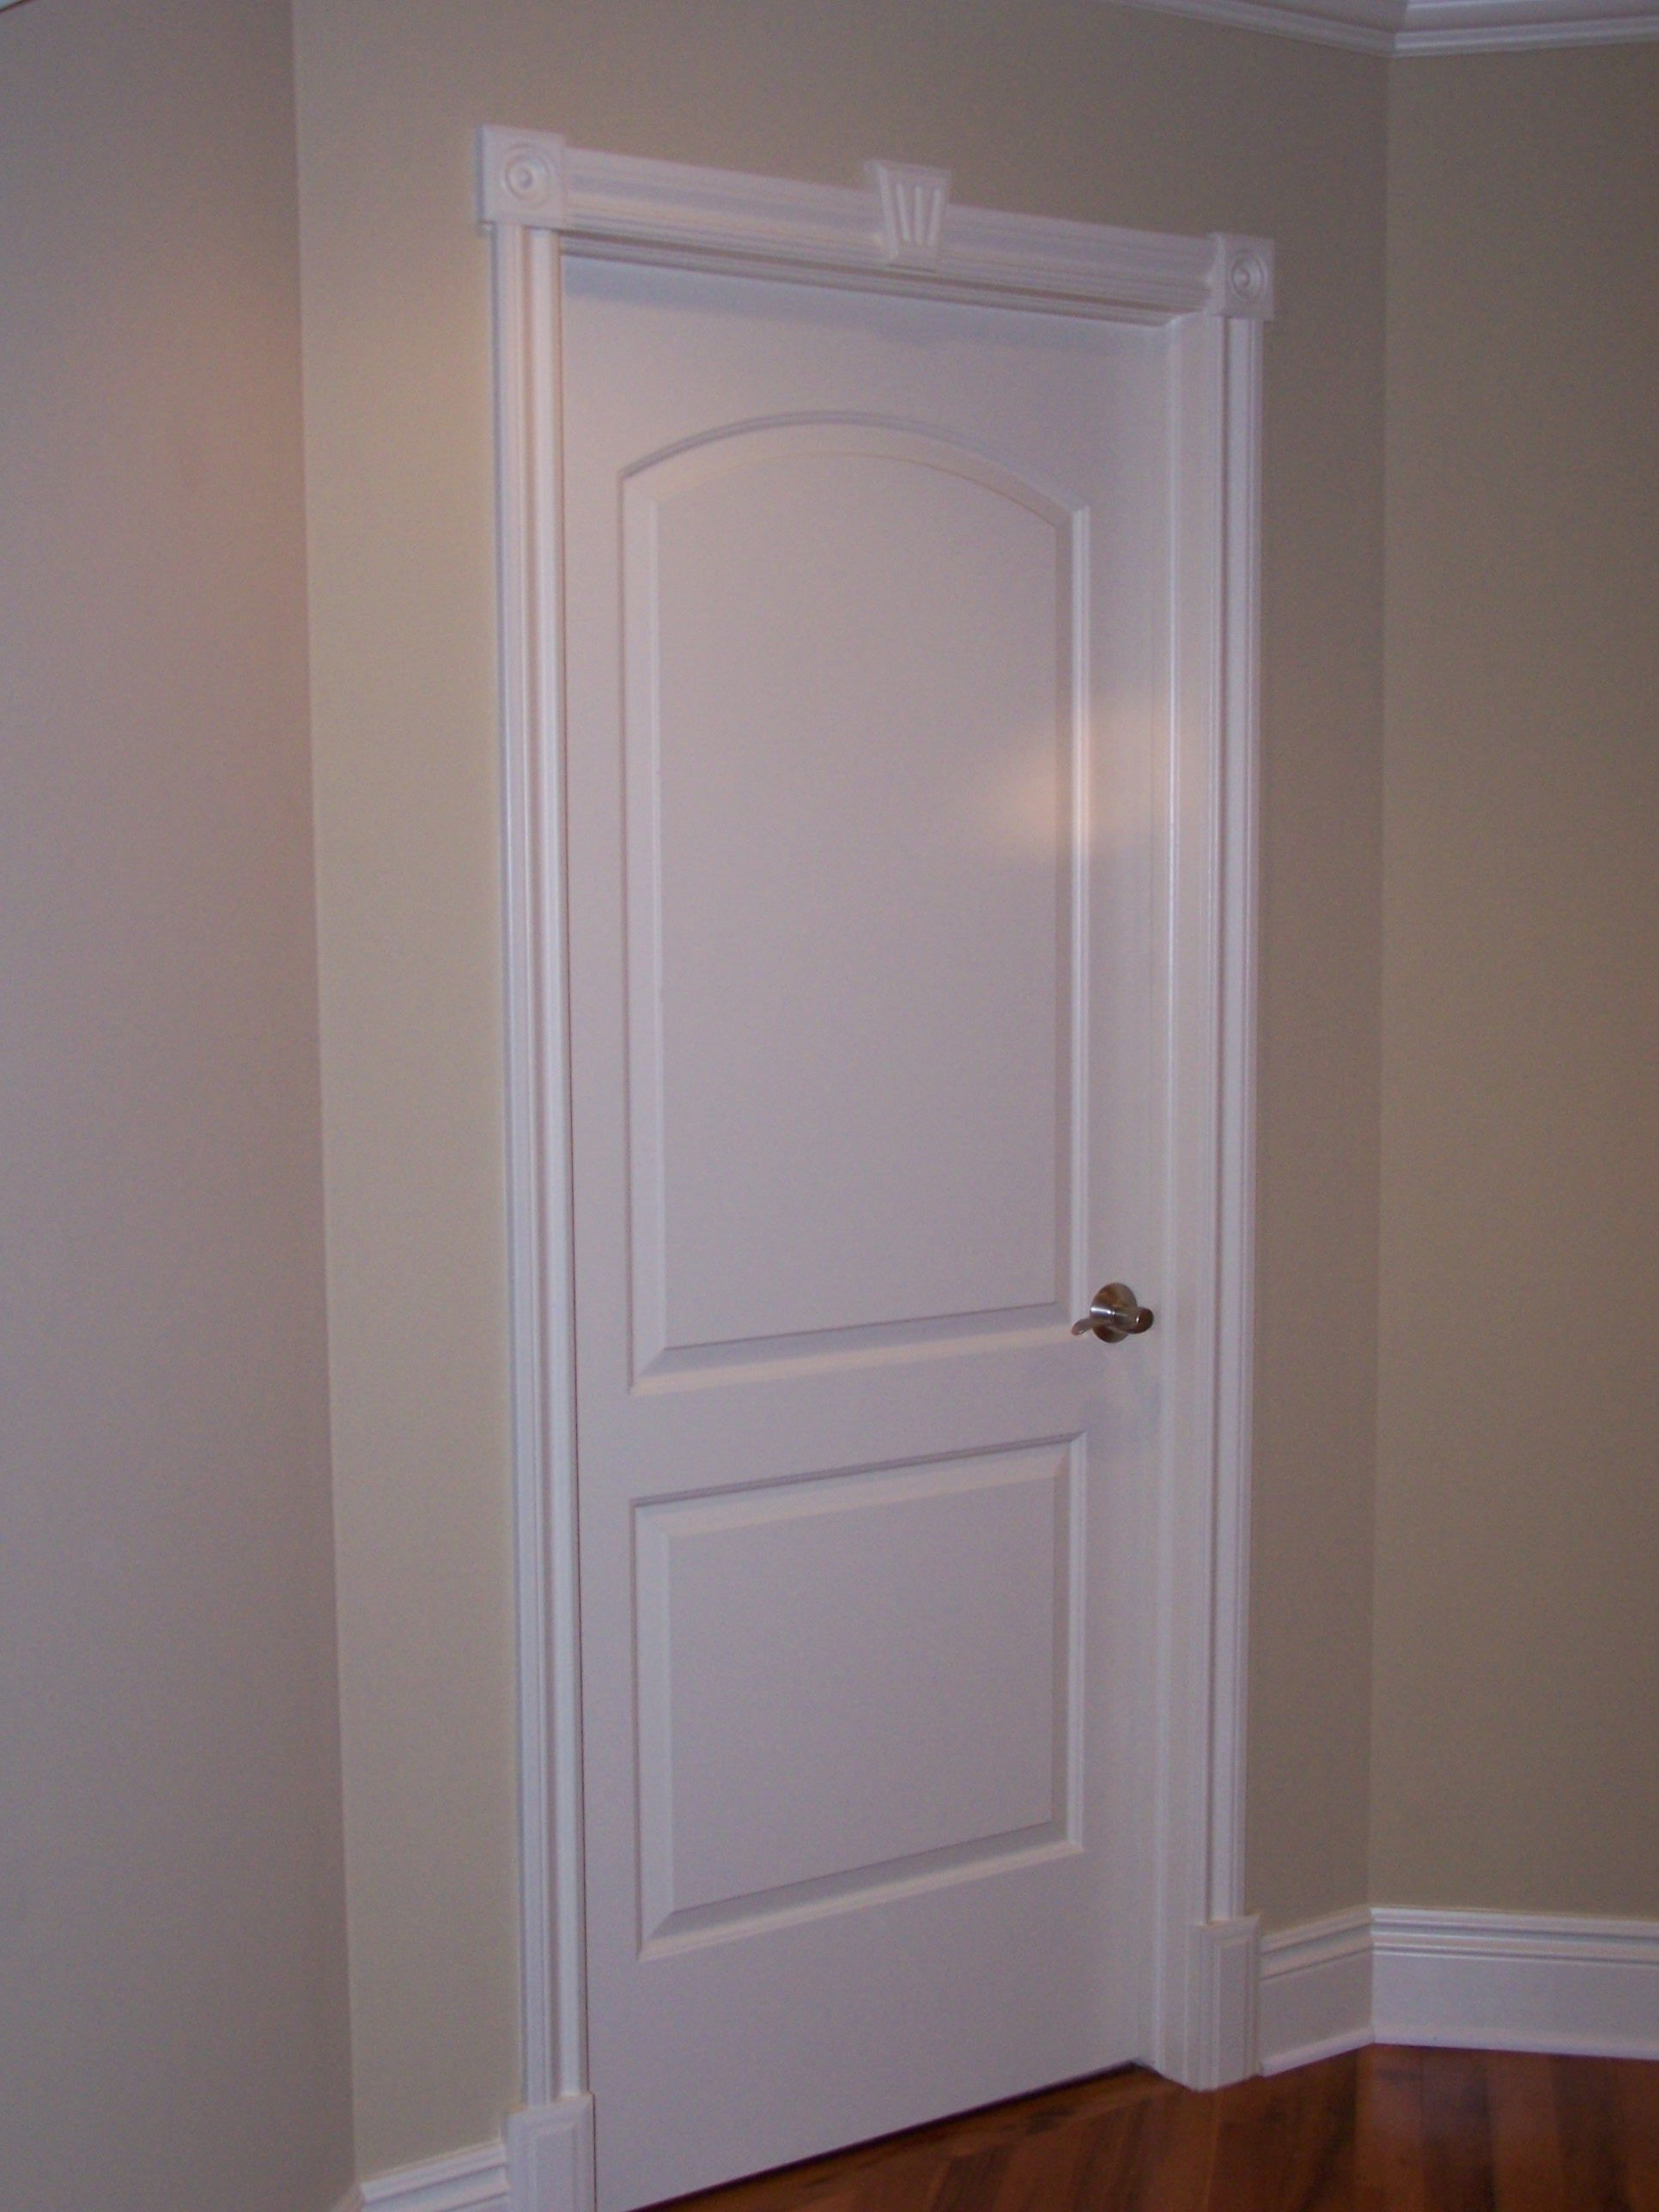 Decorative Door Trim For The Home Pinterest Door Trims Molding Ideas And Moldings